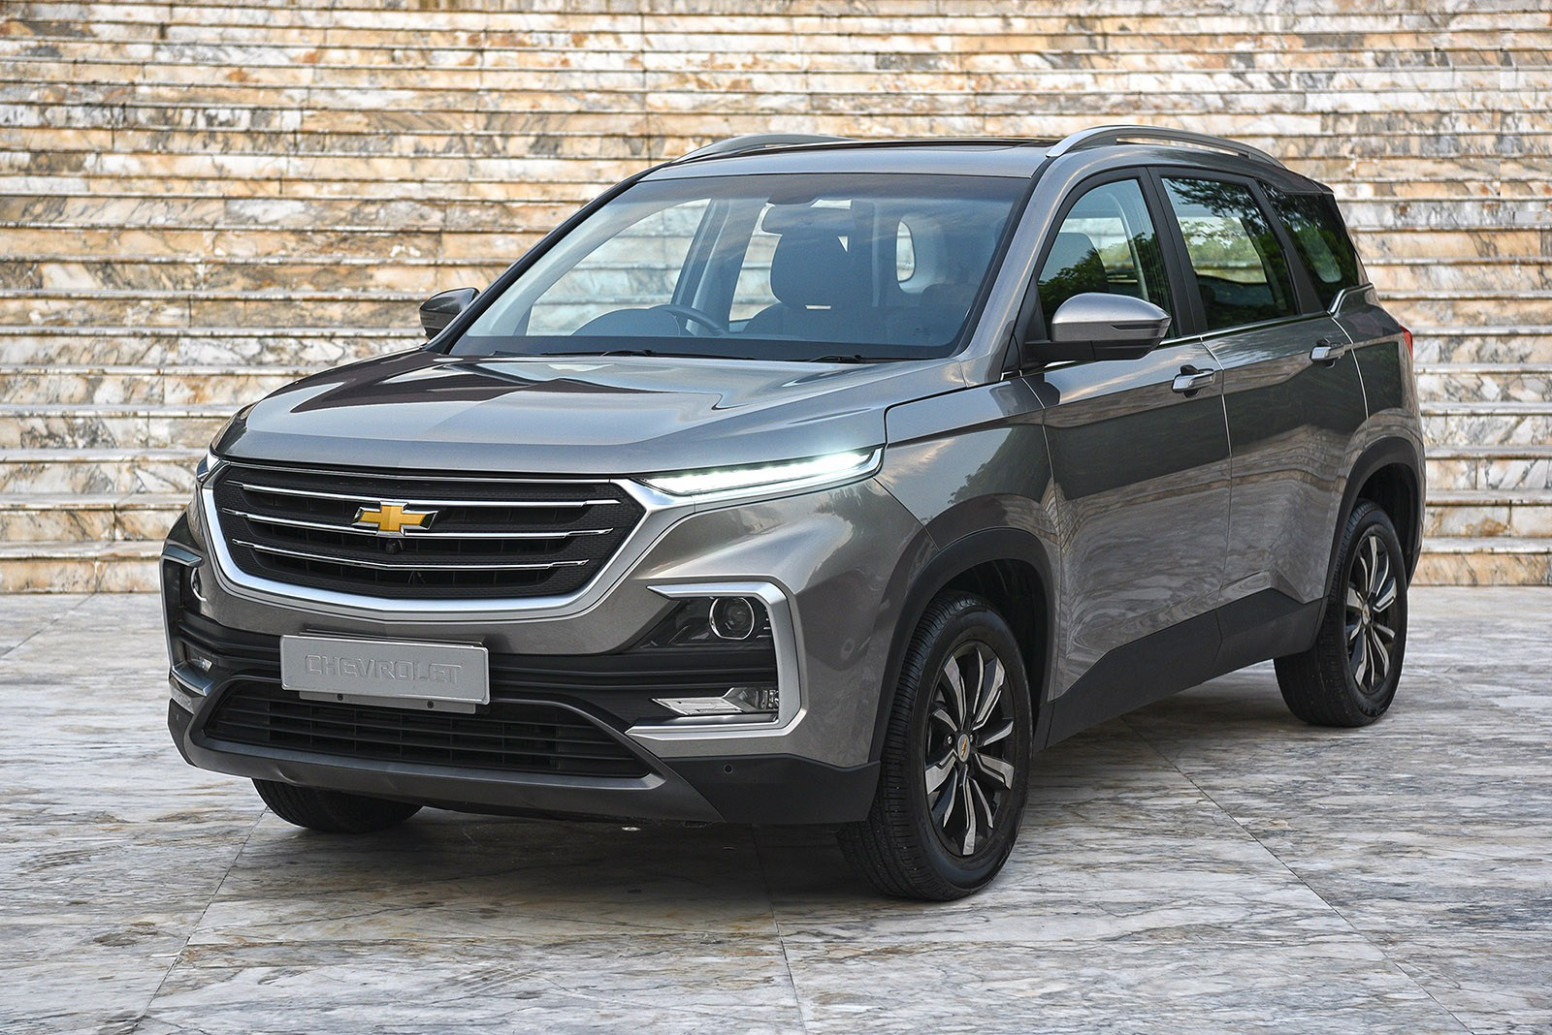 The 6 Chevrolet Captiva is Coming to Egypt - The News Wheel